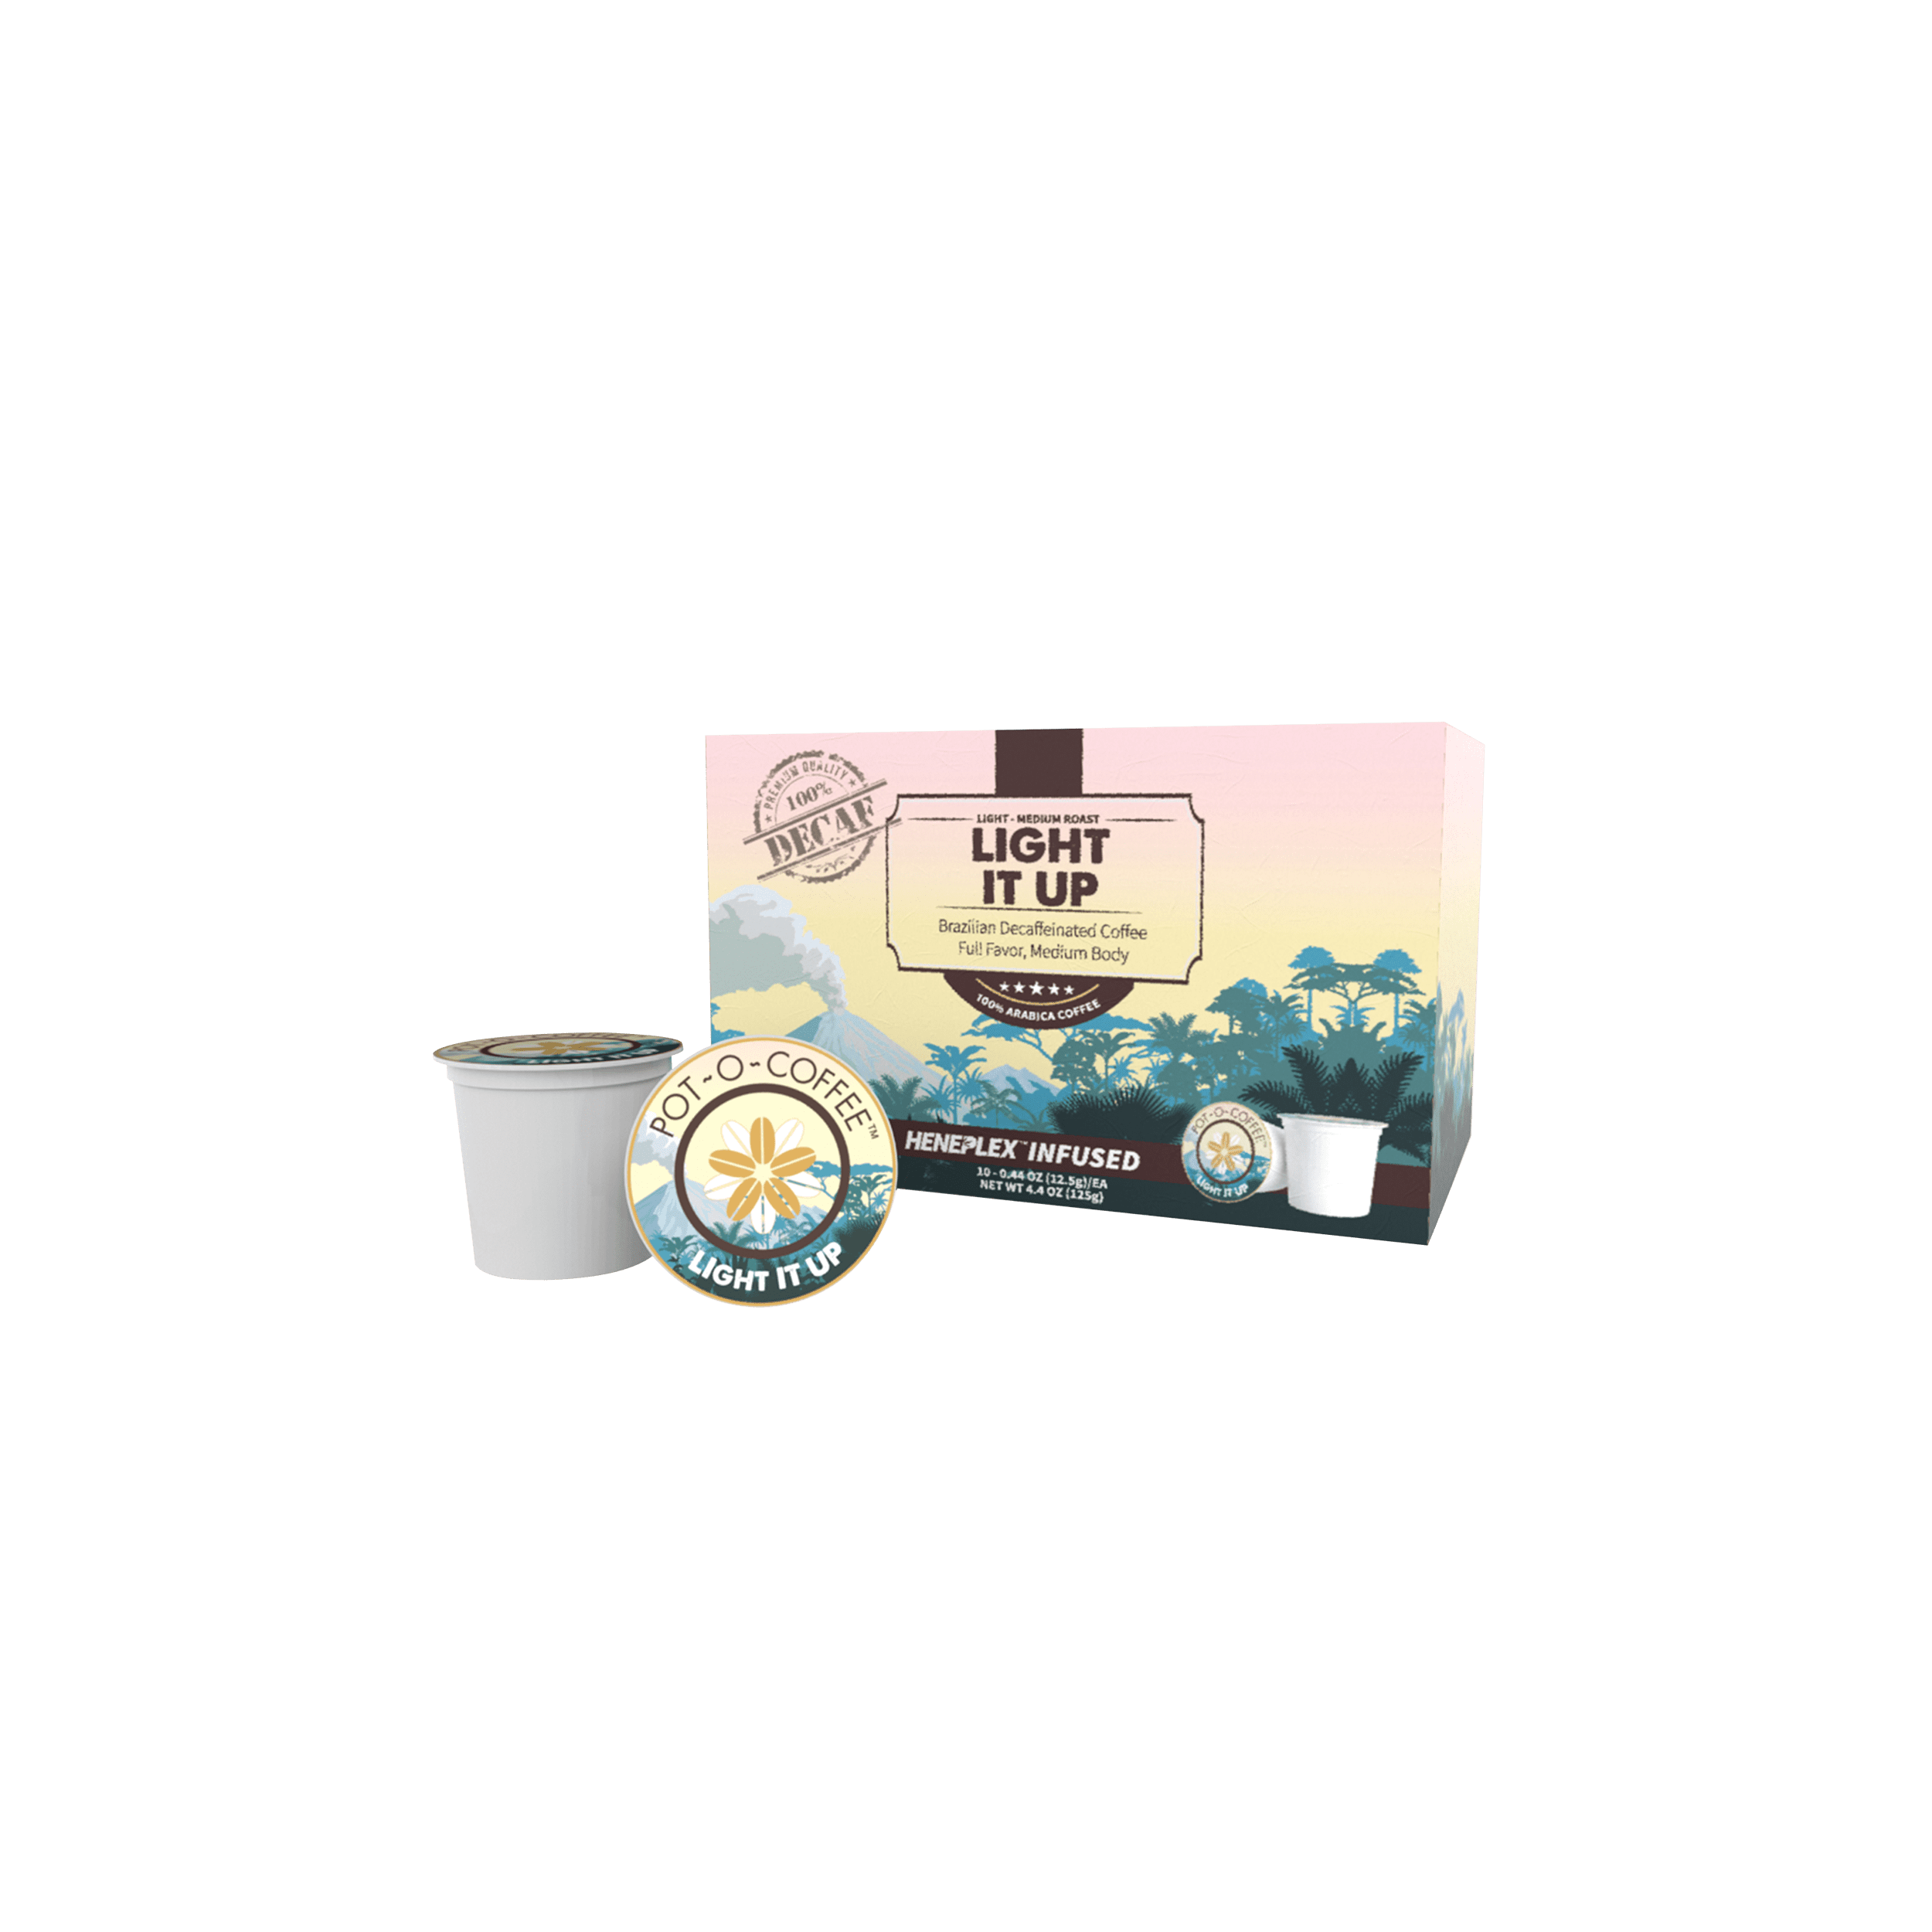 Pot-O-Coffee Light It Up – Decaf – K-Cup